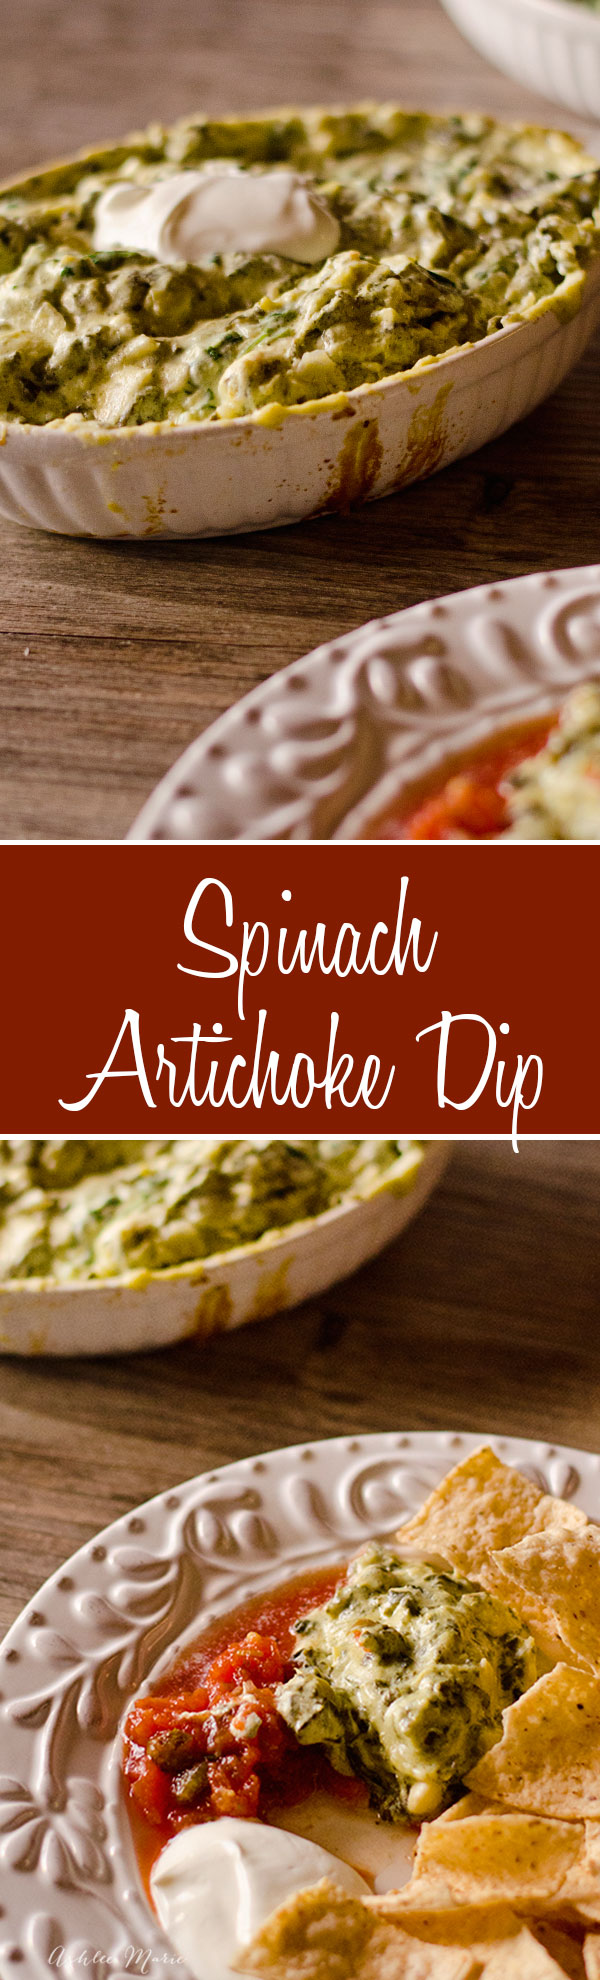 the best spinach artichoke dip you will ever try, warm, cheesy and seriously so good